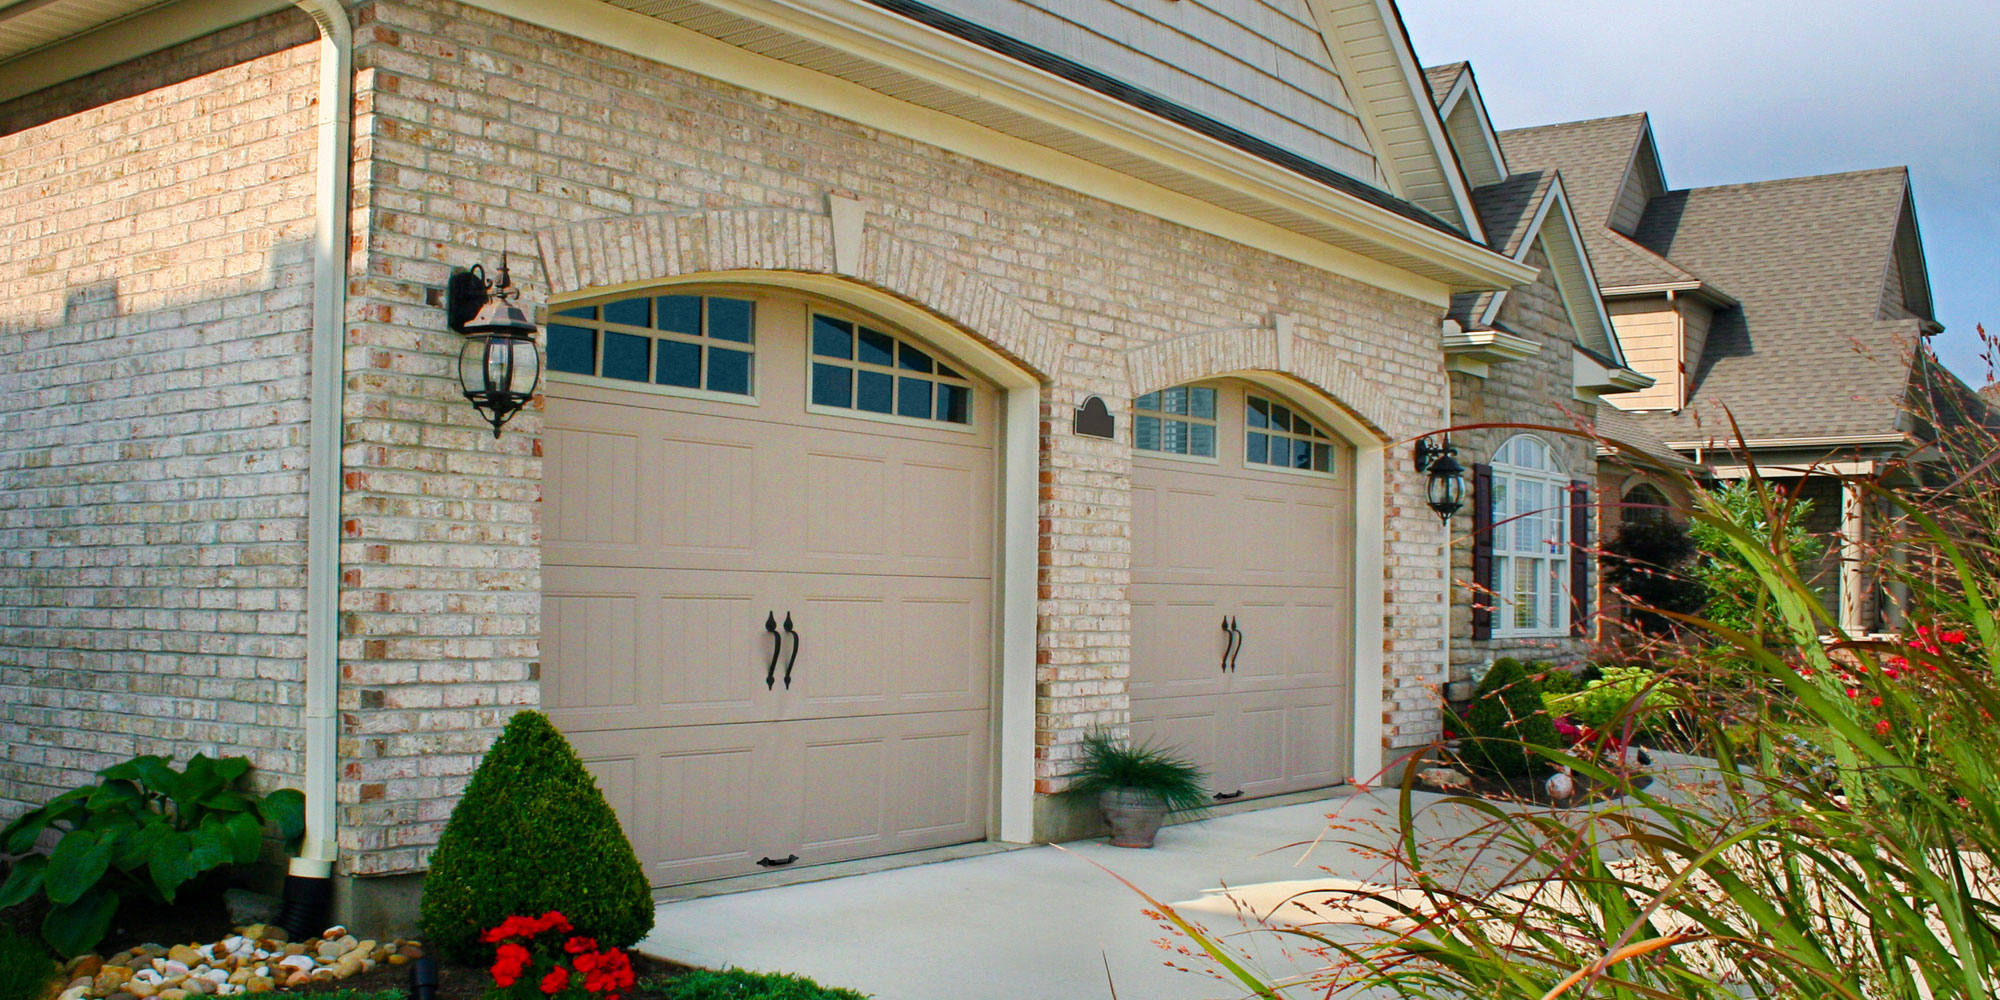 Spring Valley Overhead Door, Garage Door, Garage Opener, House, Residential, Commercial, Automotive, Car, Shop, Out Building, Farm, Apartment, Condo, New Construction, Home Remodel, Addition, Contractors, Clopay, LIftMaster, Install, Repair, Fix, WiFi, Smart Phone, Industrial, high lift door, safety sensor, timer, horsepower, hinges, rollers, cables, torsion, extension spring, garage panel, garage window, sales, service, all brands, steel, durability, raised panel, vintage, grooved, decorative, faux woodgrain, modern, mid-century, aluminum, glass, climate, efficient, insulated, warehouse, shipping dock, natural light, counter doors, shutters, fire resistance, Maintenance, Fiberglass, Vinyl, Free, Estimate, Chamberlain, Amarr, Midland, Unique, Carriage House, Raynor, Wayne-Dalton, Masonite International, Hormann, Northwest, Alumatek, Craftsman, Steelcraft, Anderson, Menards, Home Depot, Sears, Lowe's, Quality Overhead Door, S&S Overhead Door, Thompson's Garage Door and Openers, Don's Doors, La Crosse Glass, Spring Valley, LeRoy, Grand Meadow, Stewartville, Rochester, Preston, Wykoff, Fountain, Chatfield, Lanesboro, Harmony, Ostrander, Lime Springs, Cresco, Decorah, Riceville, St. Charles, Eyota, Dover, Saratoa, Chester, Elba, Elgin, Lewiston, Utica, Altura, Winona, La Crescent, Rushford, Houston, Peterson, Whalan, Fremont, Elba, Oronoco, Kasson, Byron, Minnowa, Construction, Home Builder, C&J Builders, Bob's Construction, Dahl Home Builders, Fleming,